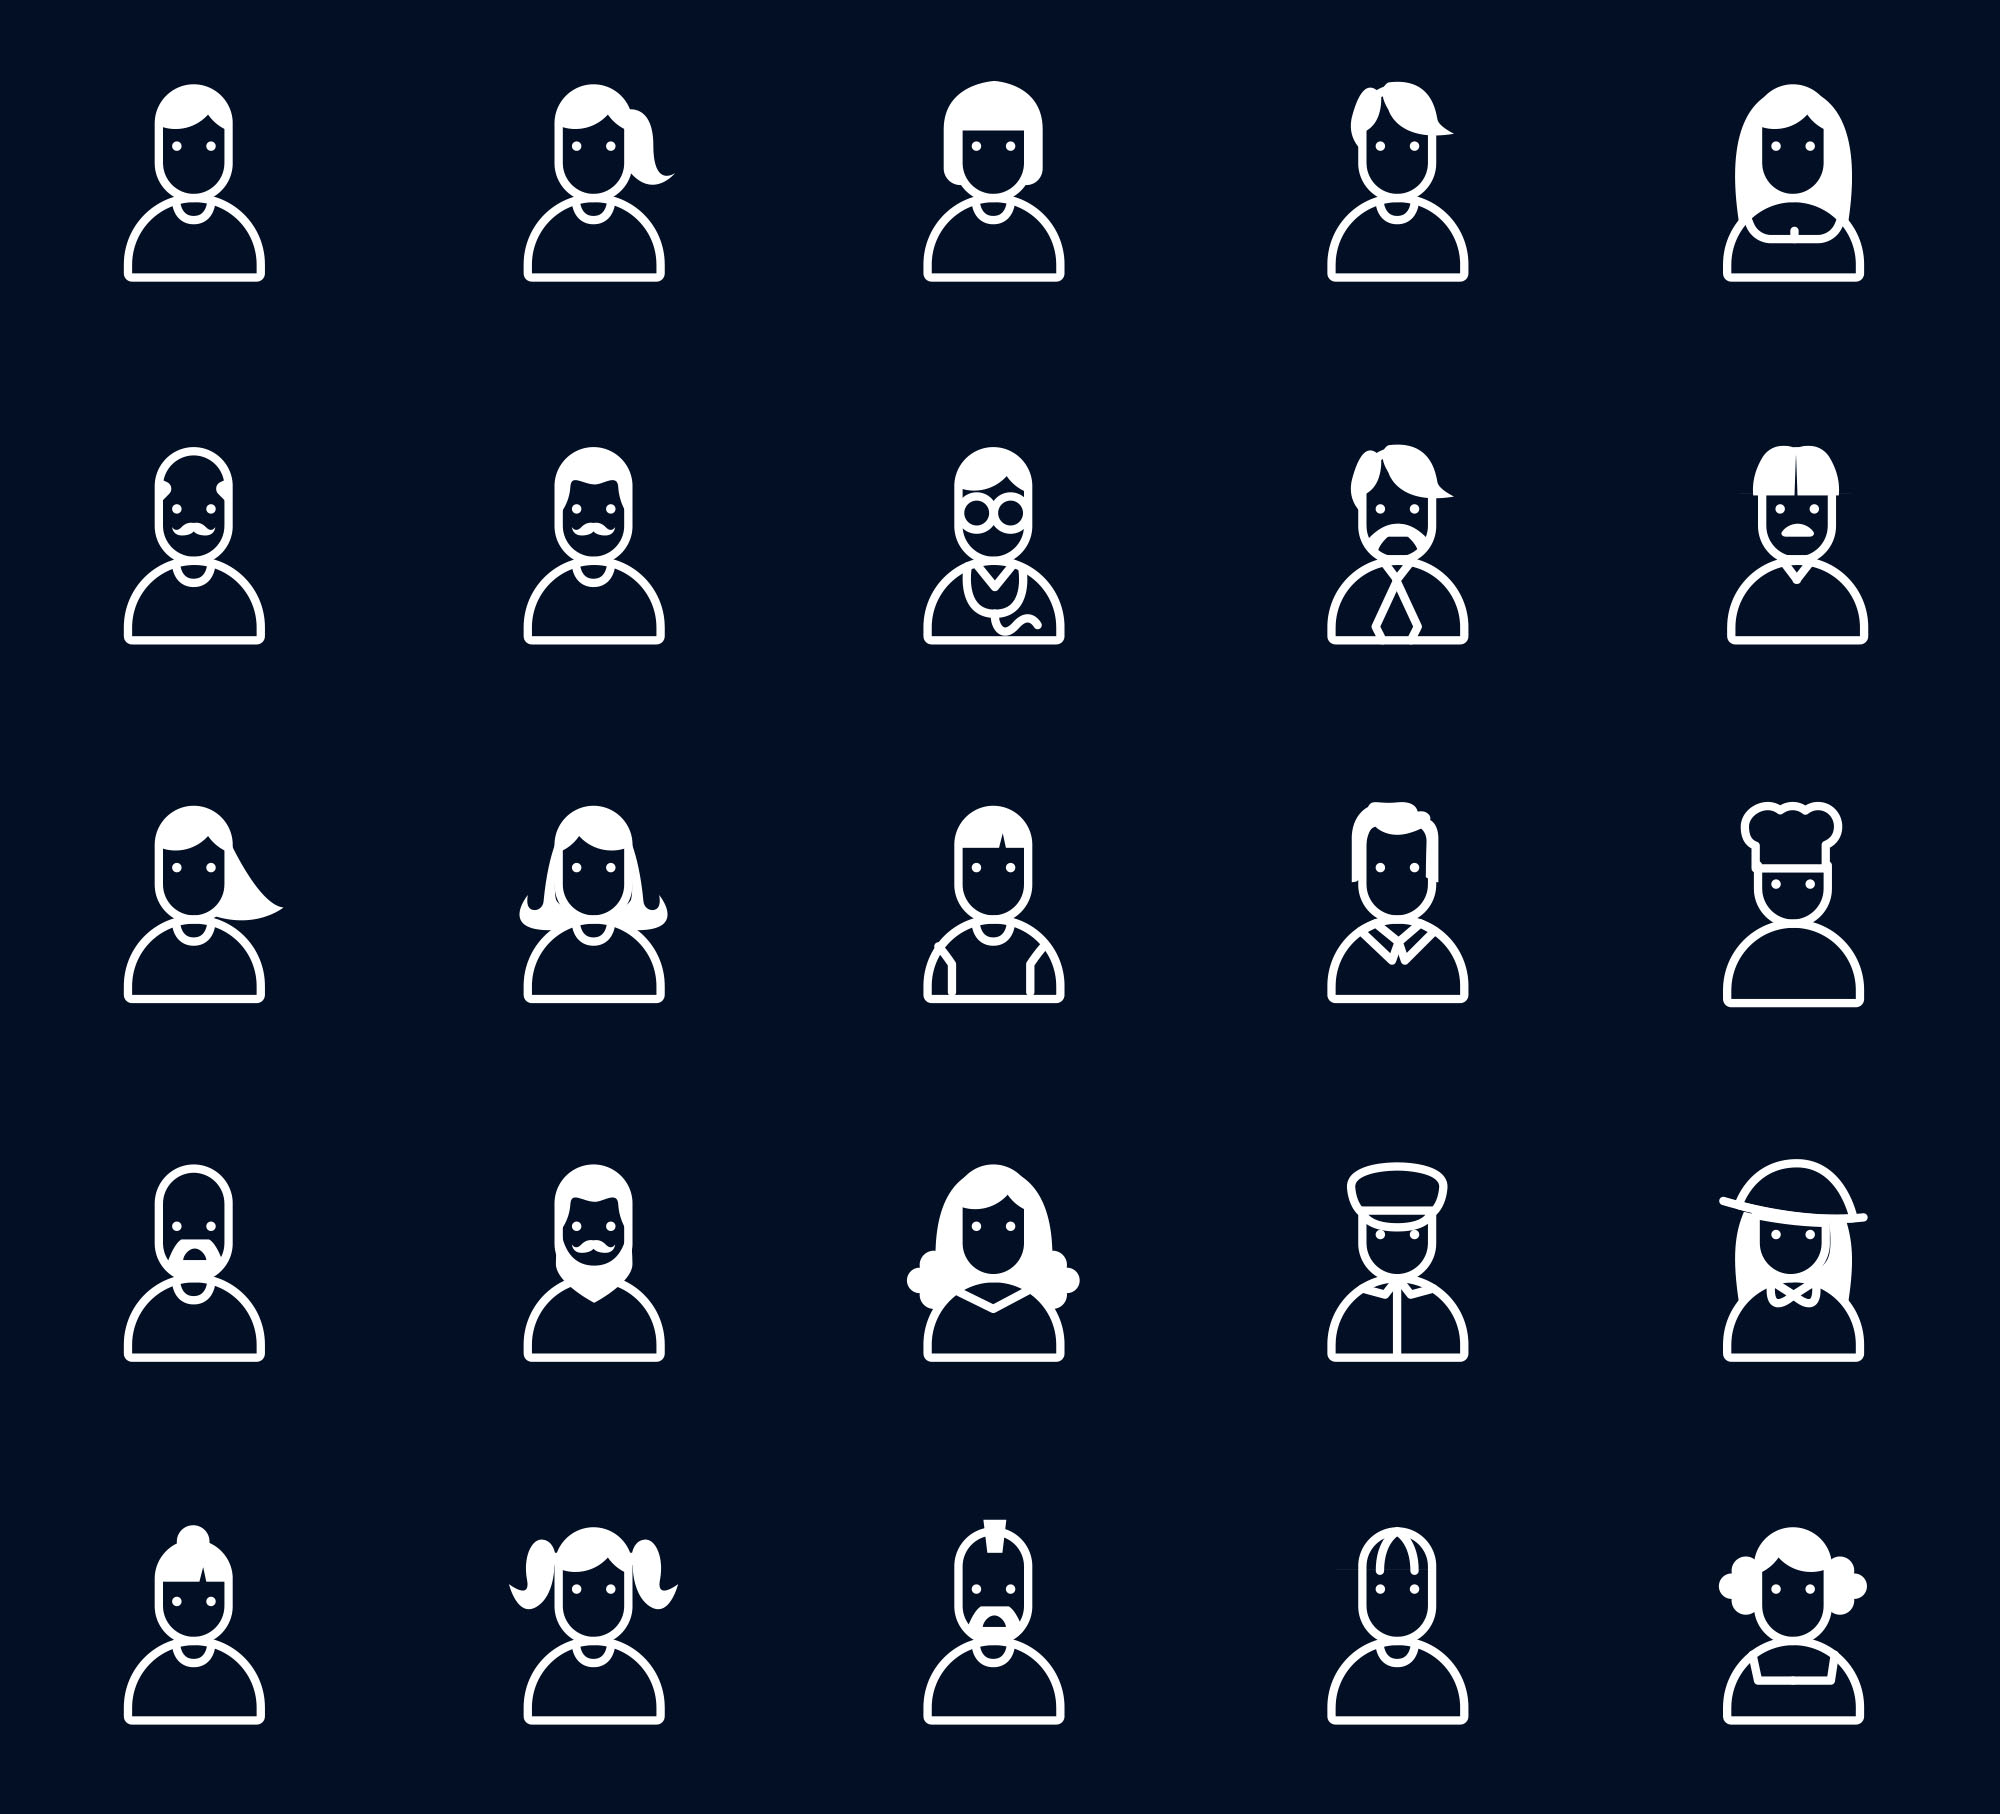 People and User Icons Colored